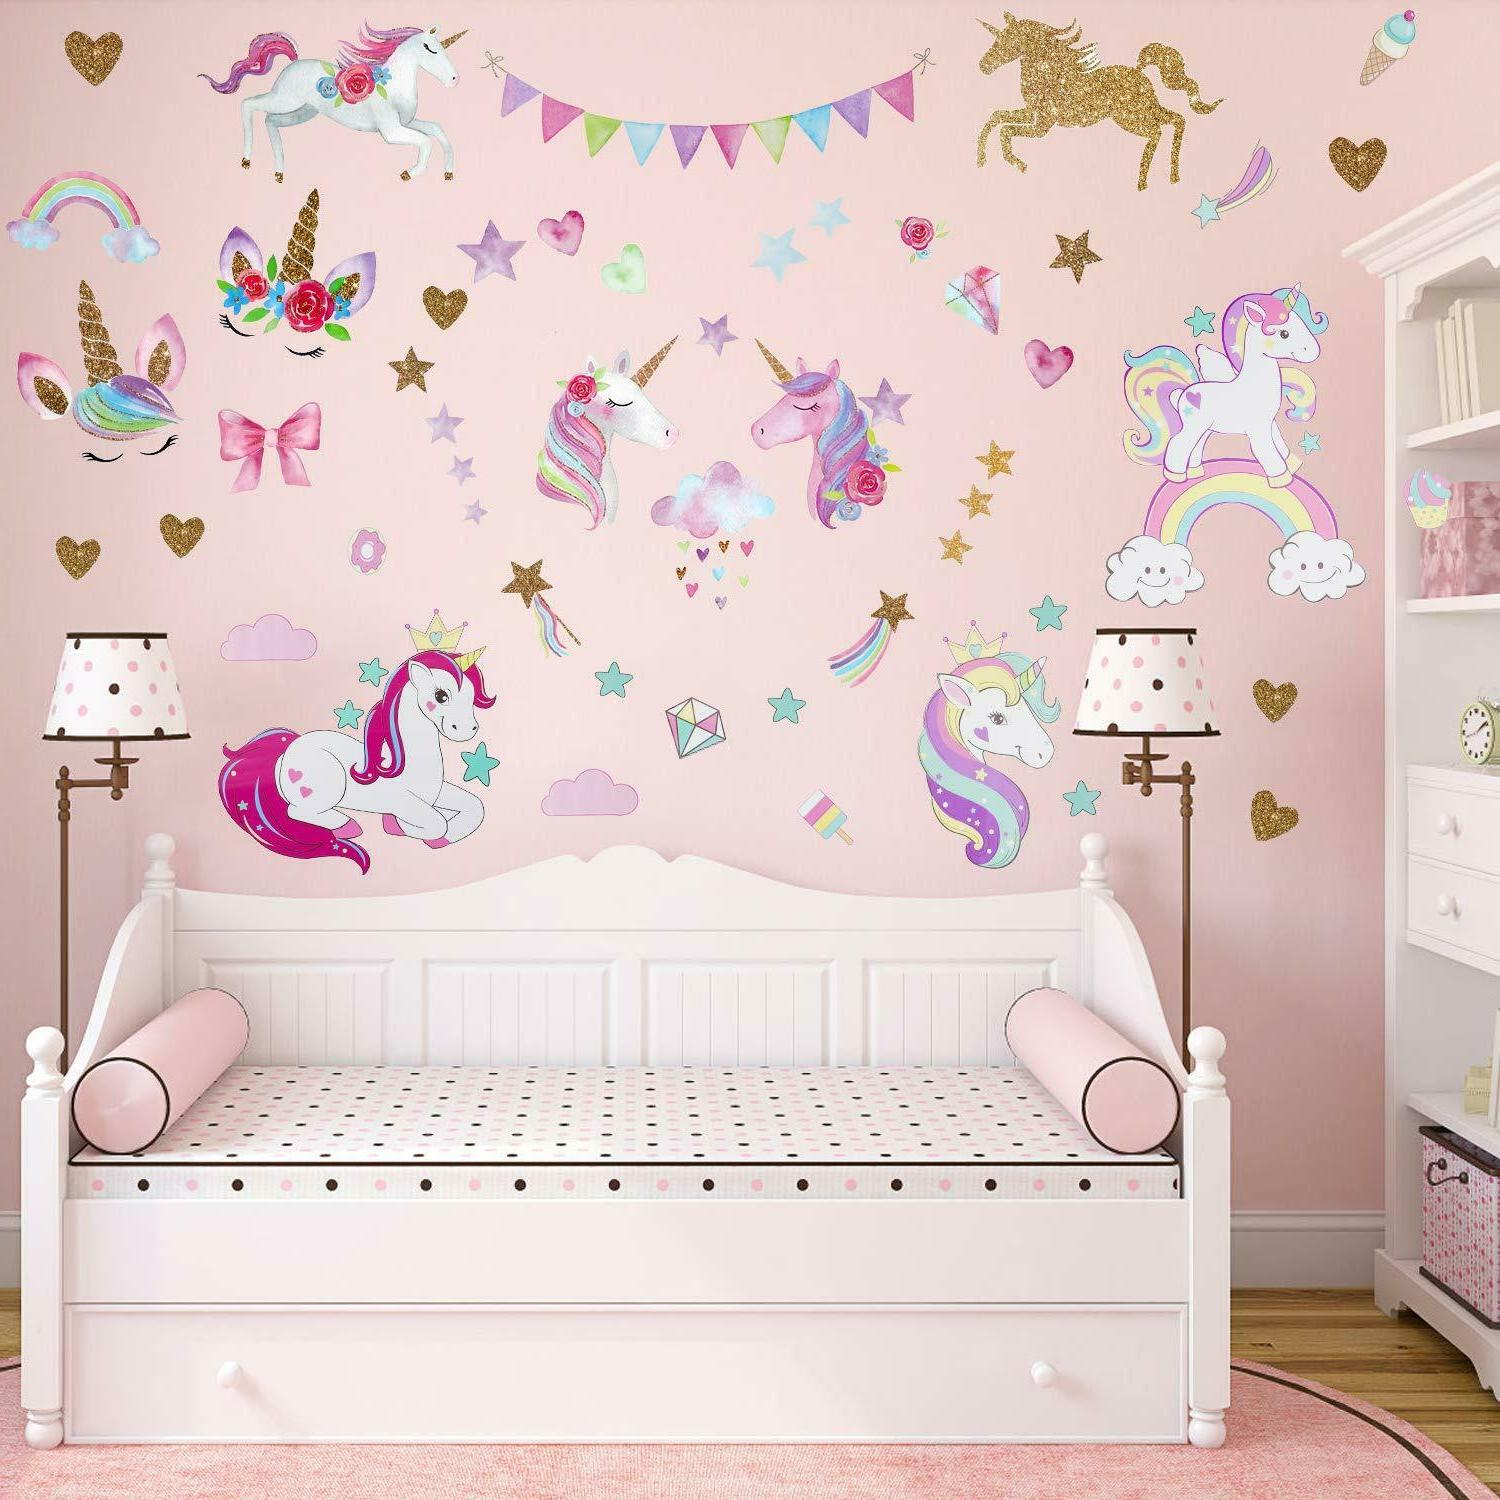 3Sheets 2Styles Unicorn Wall for Room Room